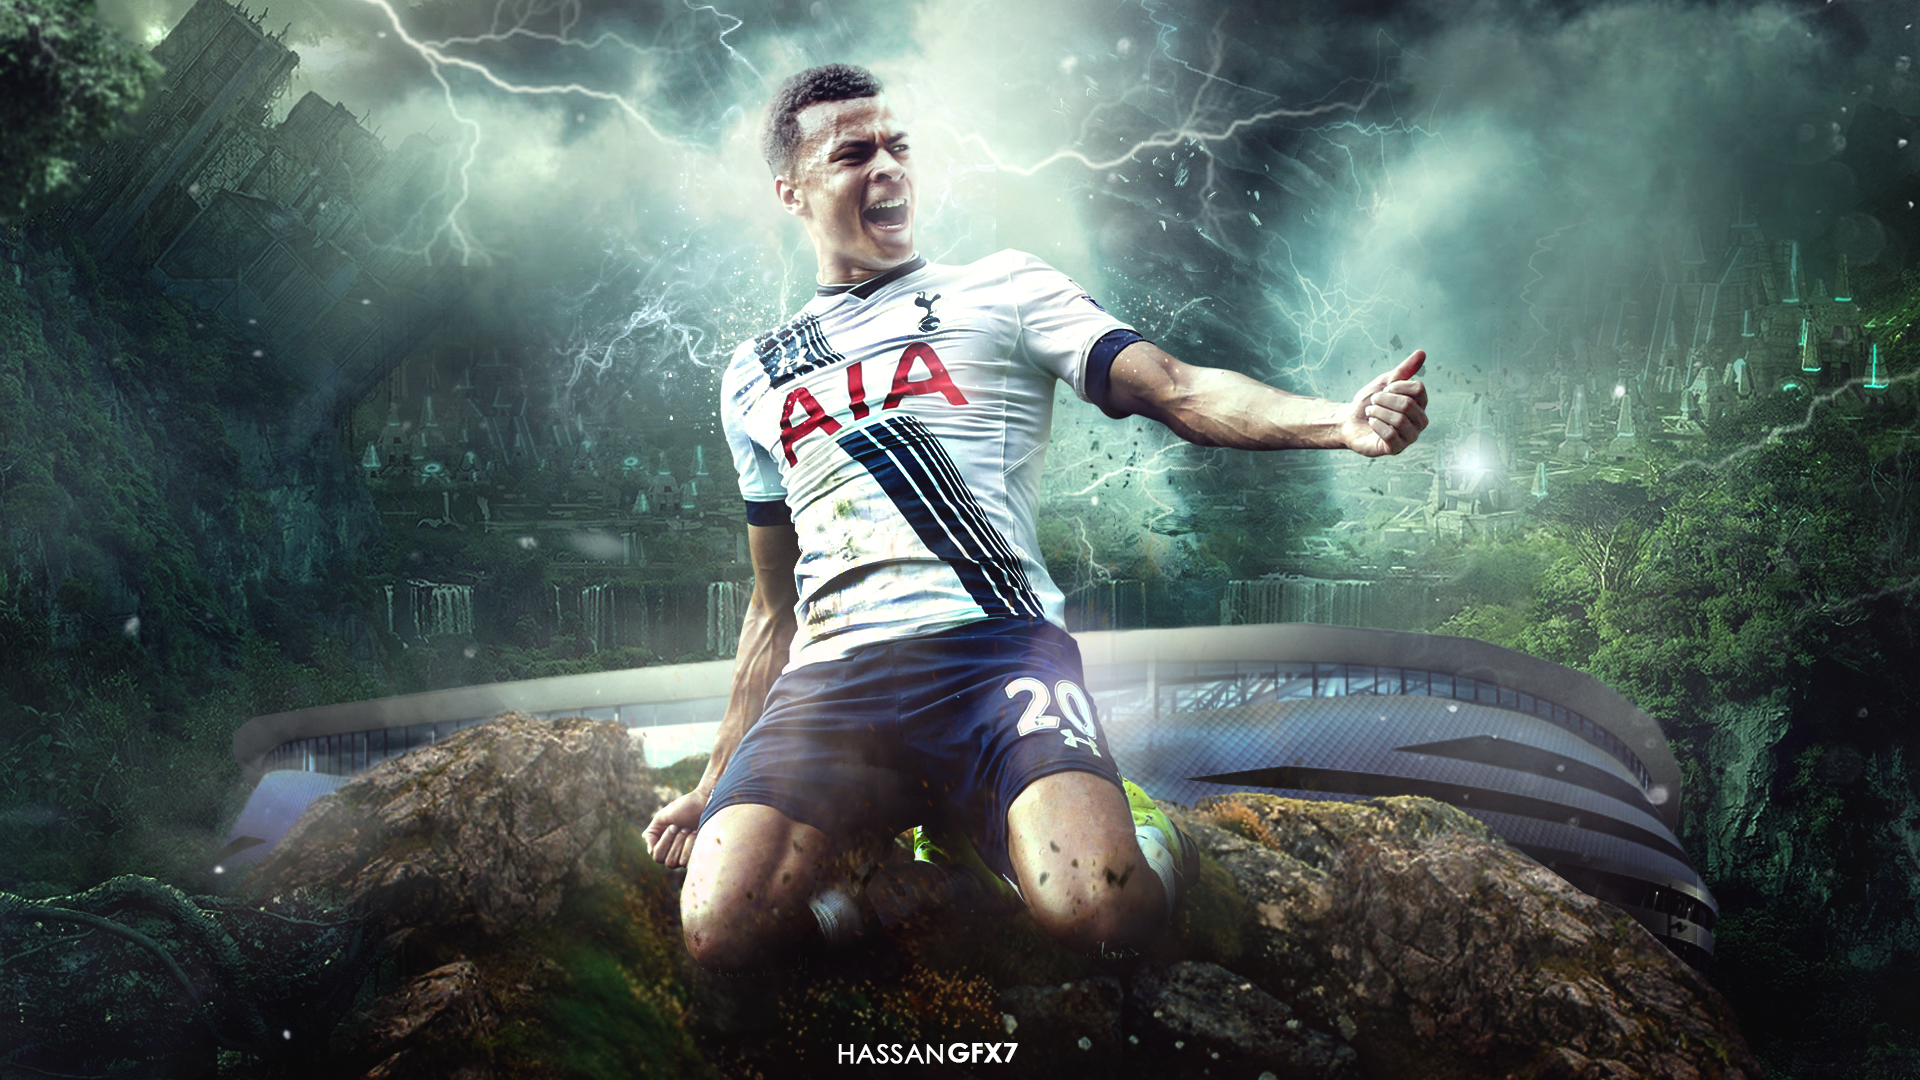 Dele Alli Wallpaper By HassanGFX7 On DeviantArt